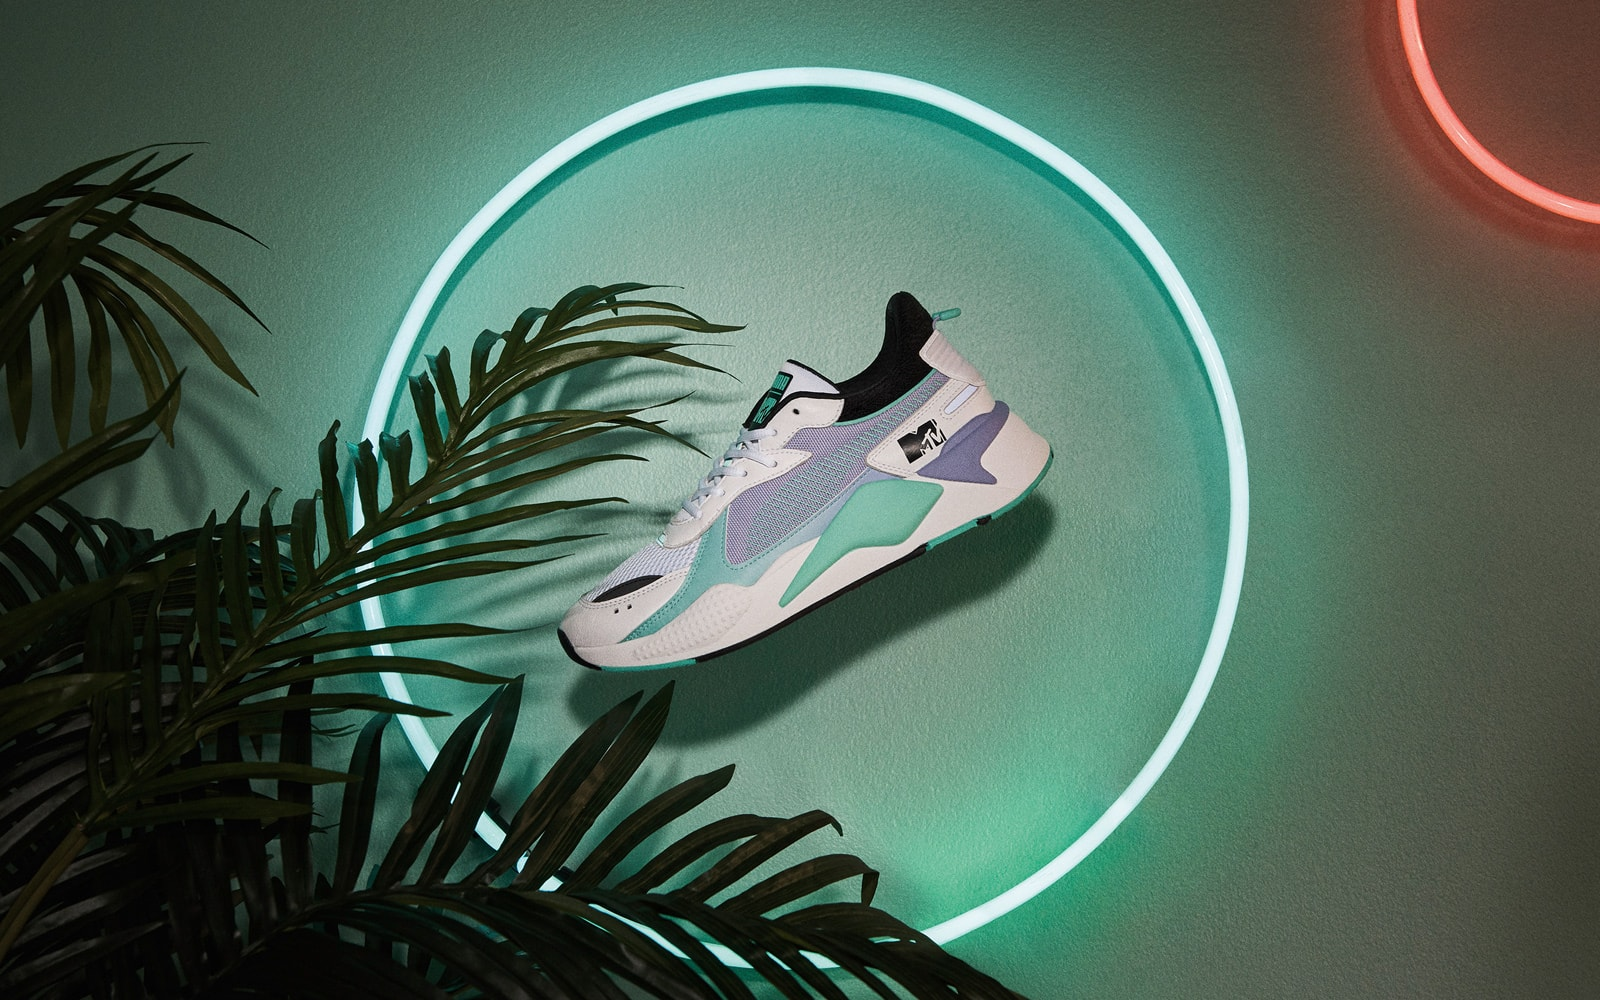 INTRODUCING THE PUMA X MTV CAPSULE COLLECTION